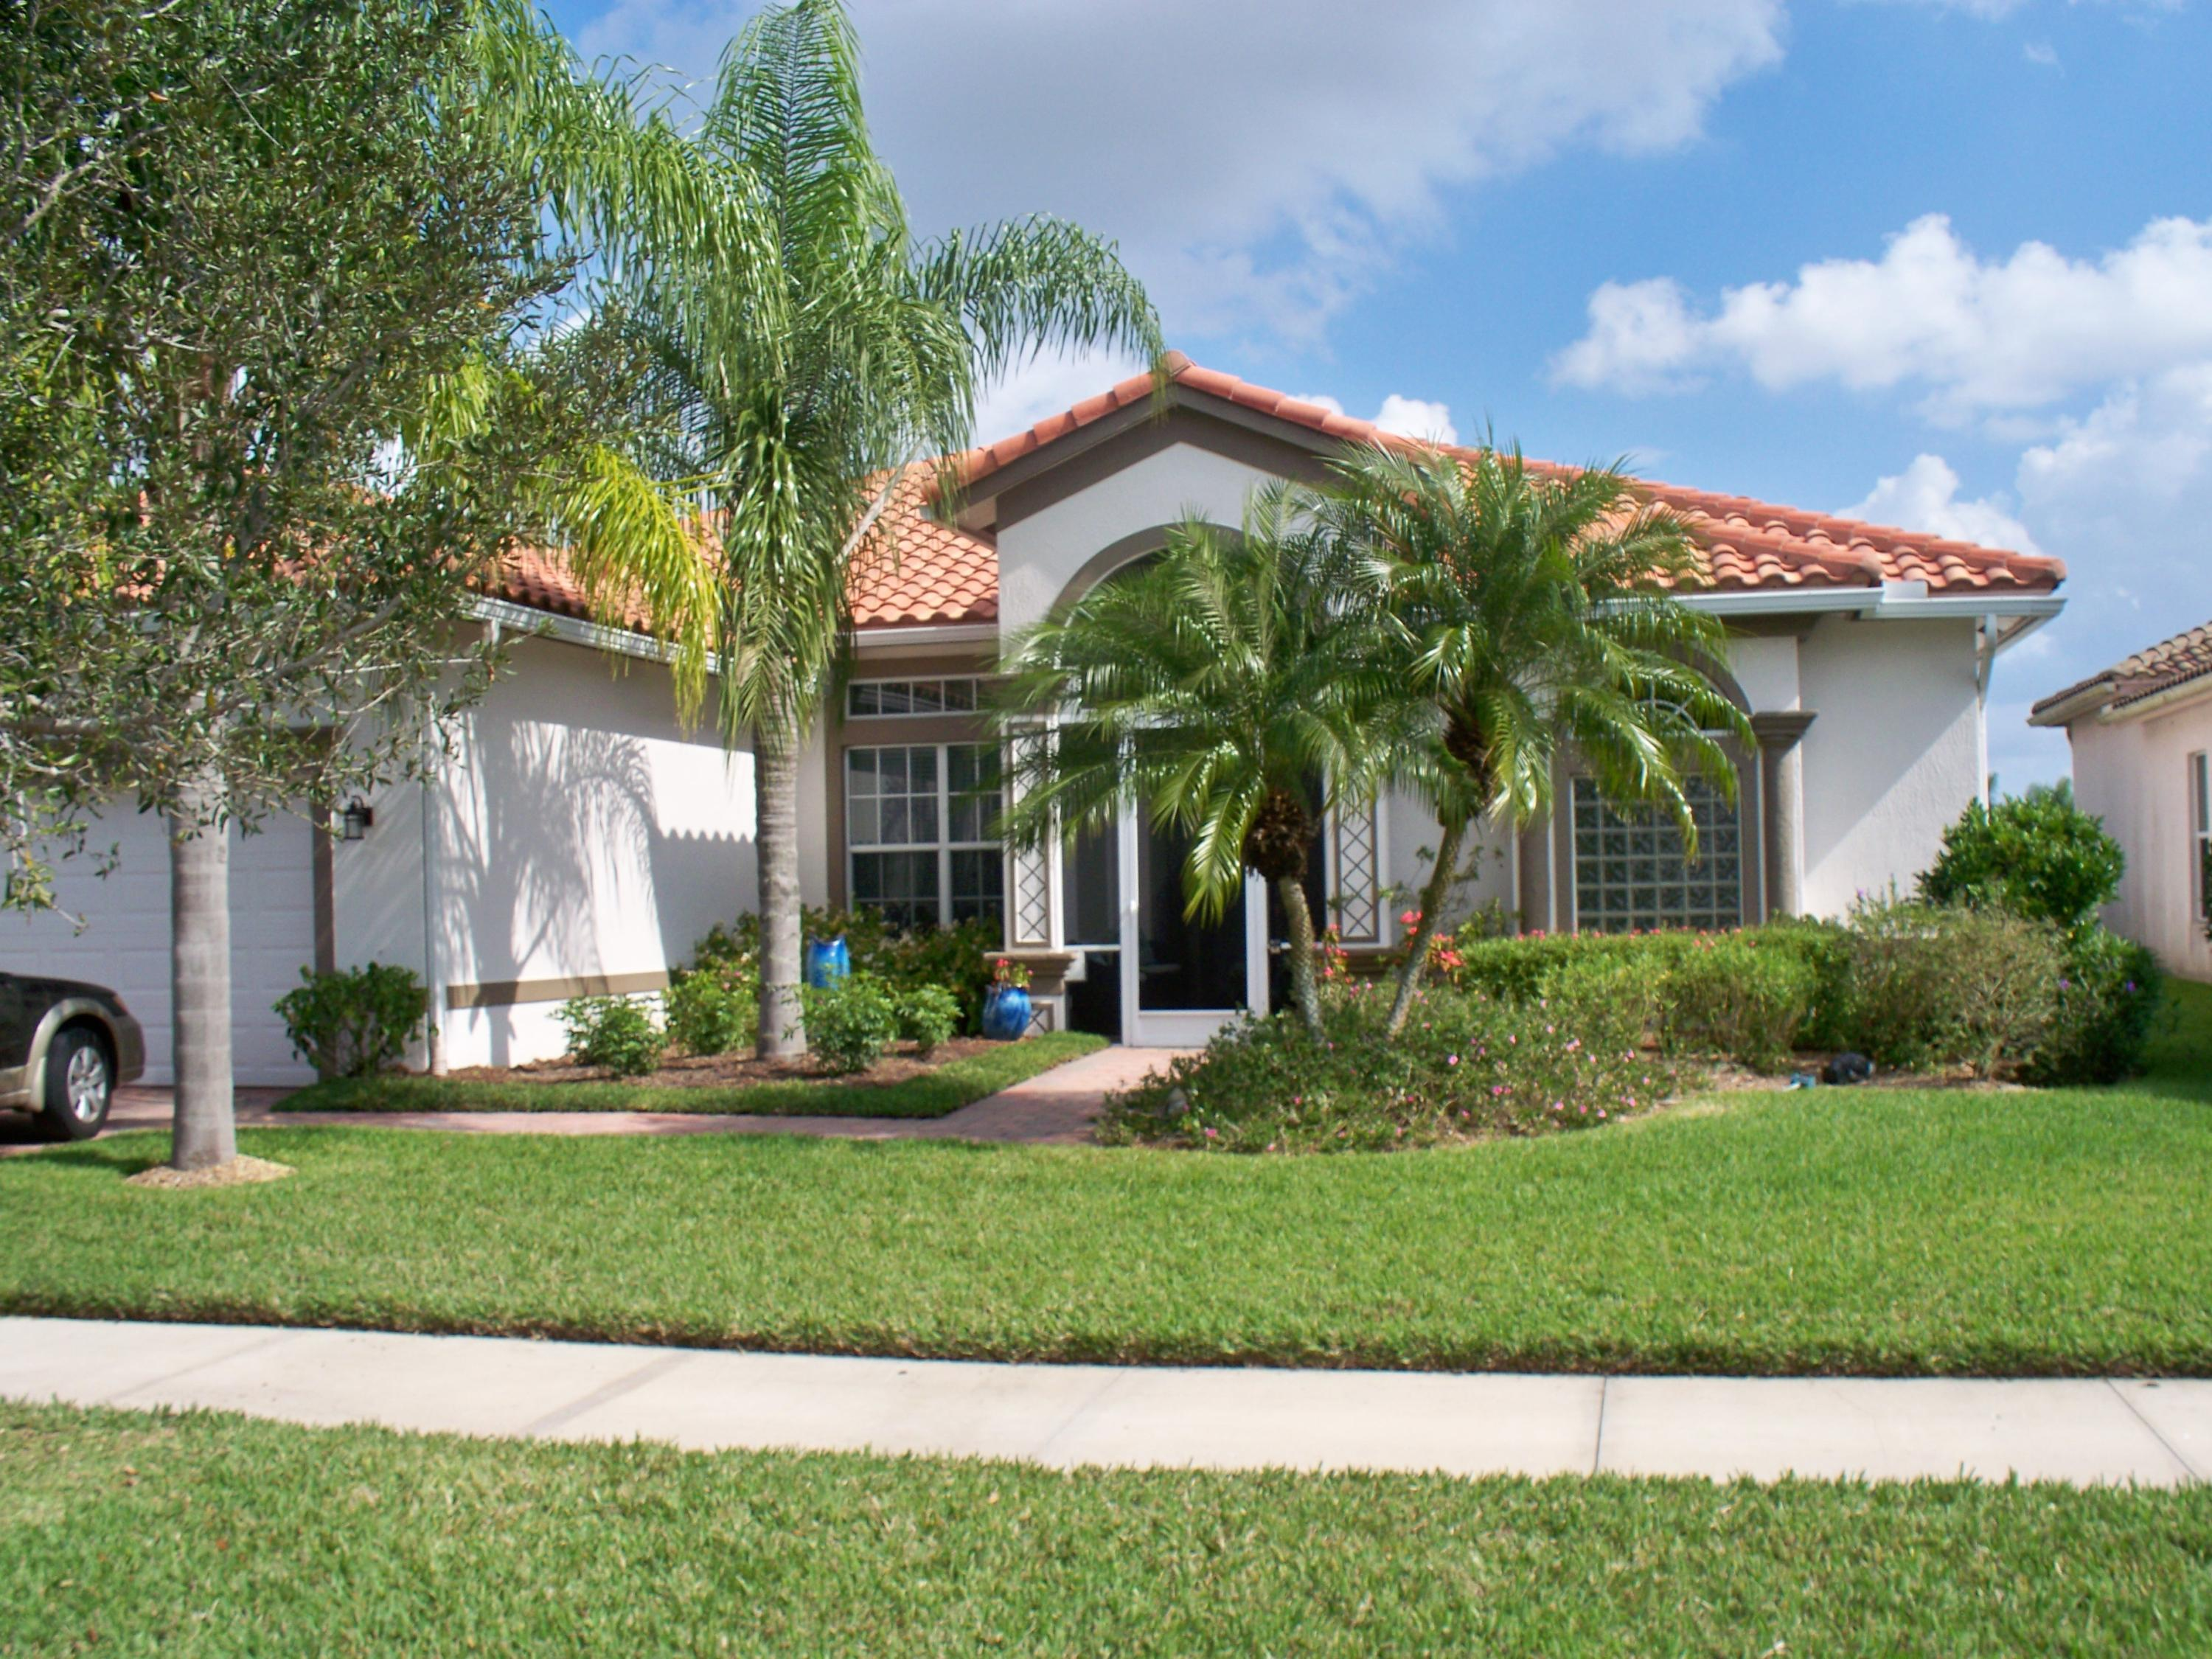 Just WOW! Discover this amazing  3/3 plus den lakefront pool home with so many upgrades -- a whole-house generator, new dual-zone A/Cs in 2017, fenced yard, tile everywhere, impact windows and doors, new refrigerator, and so much more! Watch the sun rise over the lake from your patio. Separate formal living and dining rooms flow into the open concept kitchen and family room, bathed in light from the clerestory windows and sliding glass doors. The master suite offers walk-in closets and a spa-like bath with raised cabinets and granite counters. Organizing will be a breeze with the large closets and built-in cabinetry. Tray ceilings accentuate the master, master bath and formal dining room. Vitalia is a vibrant 55+ community with a huge clubhouse, pickleball courts and other resort-style ame nities, including a putting green. This meticulously maintained home even includes 3 security cameras and 5 mounted televisions! Enjoy preparing food on your gas range, with all you need stored in 42-inch cabinets or the kitchen pantry -- no wire shelving here! Appliances are SS, counters are granite, and cleanup is easy thanks to the central vacuum system. In addition to the screened back patio, the front porch also is screened for those flow-through breezes. Brick paver driveway, walkways and patios frame the home. The pool is heated for year-round comfort, and all equipment is included. A complete gutter system efficiently wicks away stormwater, too! Truly a must-see home!